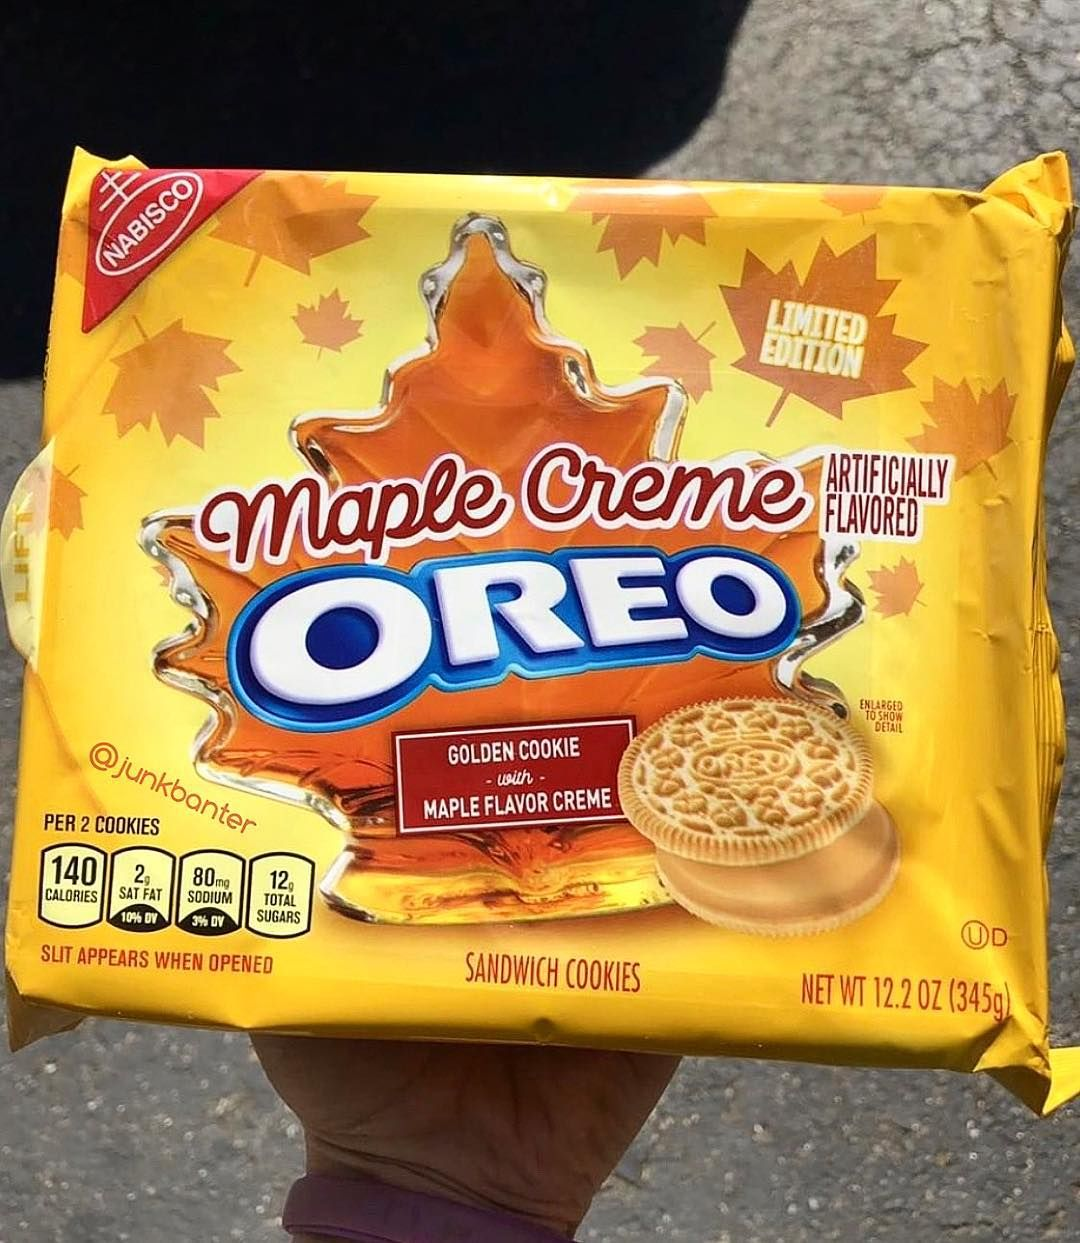 UPDATE: Those Rumored Maple Creme Oreos Are Real